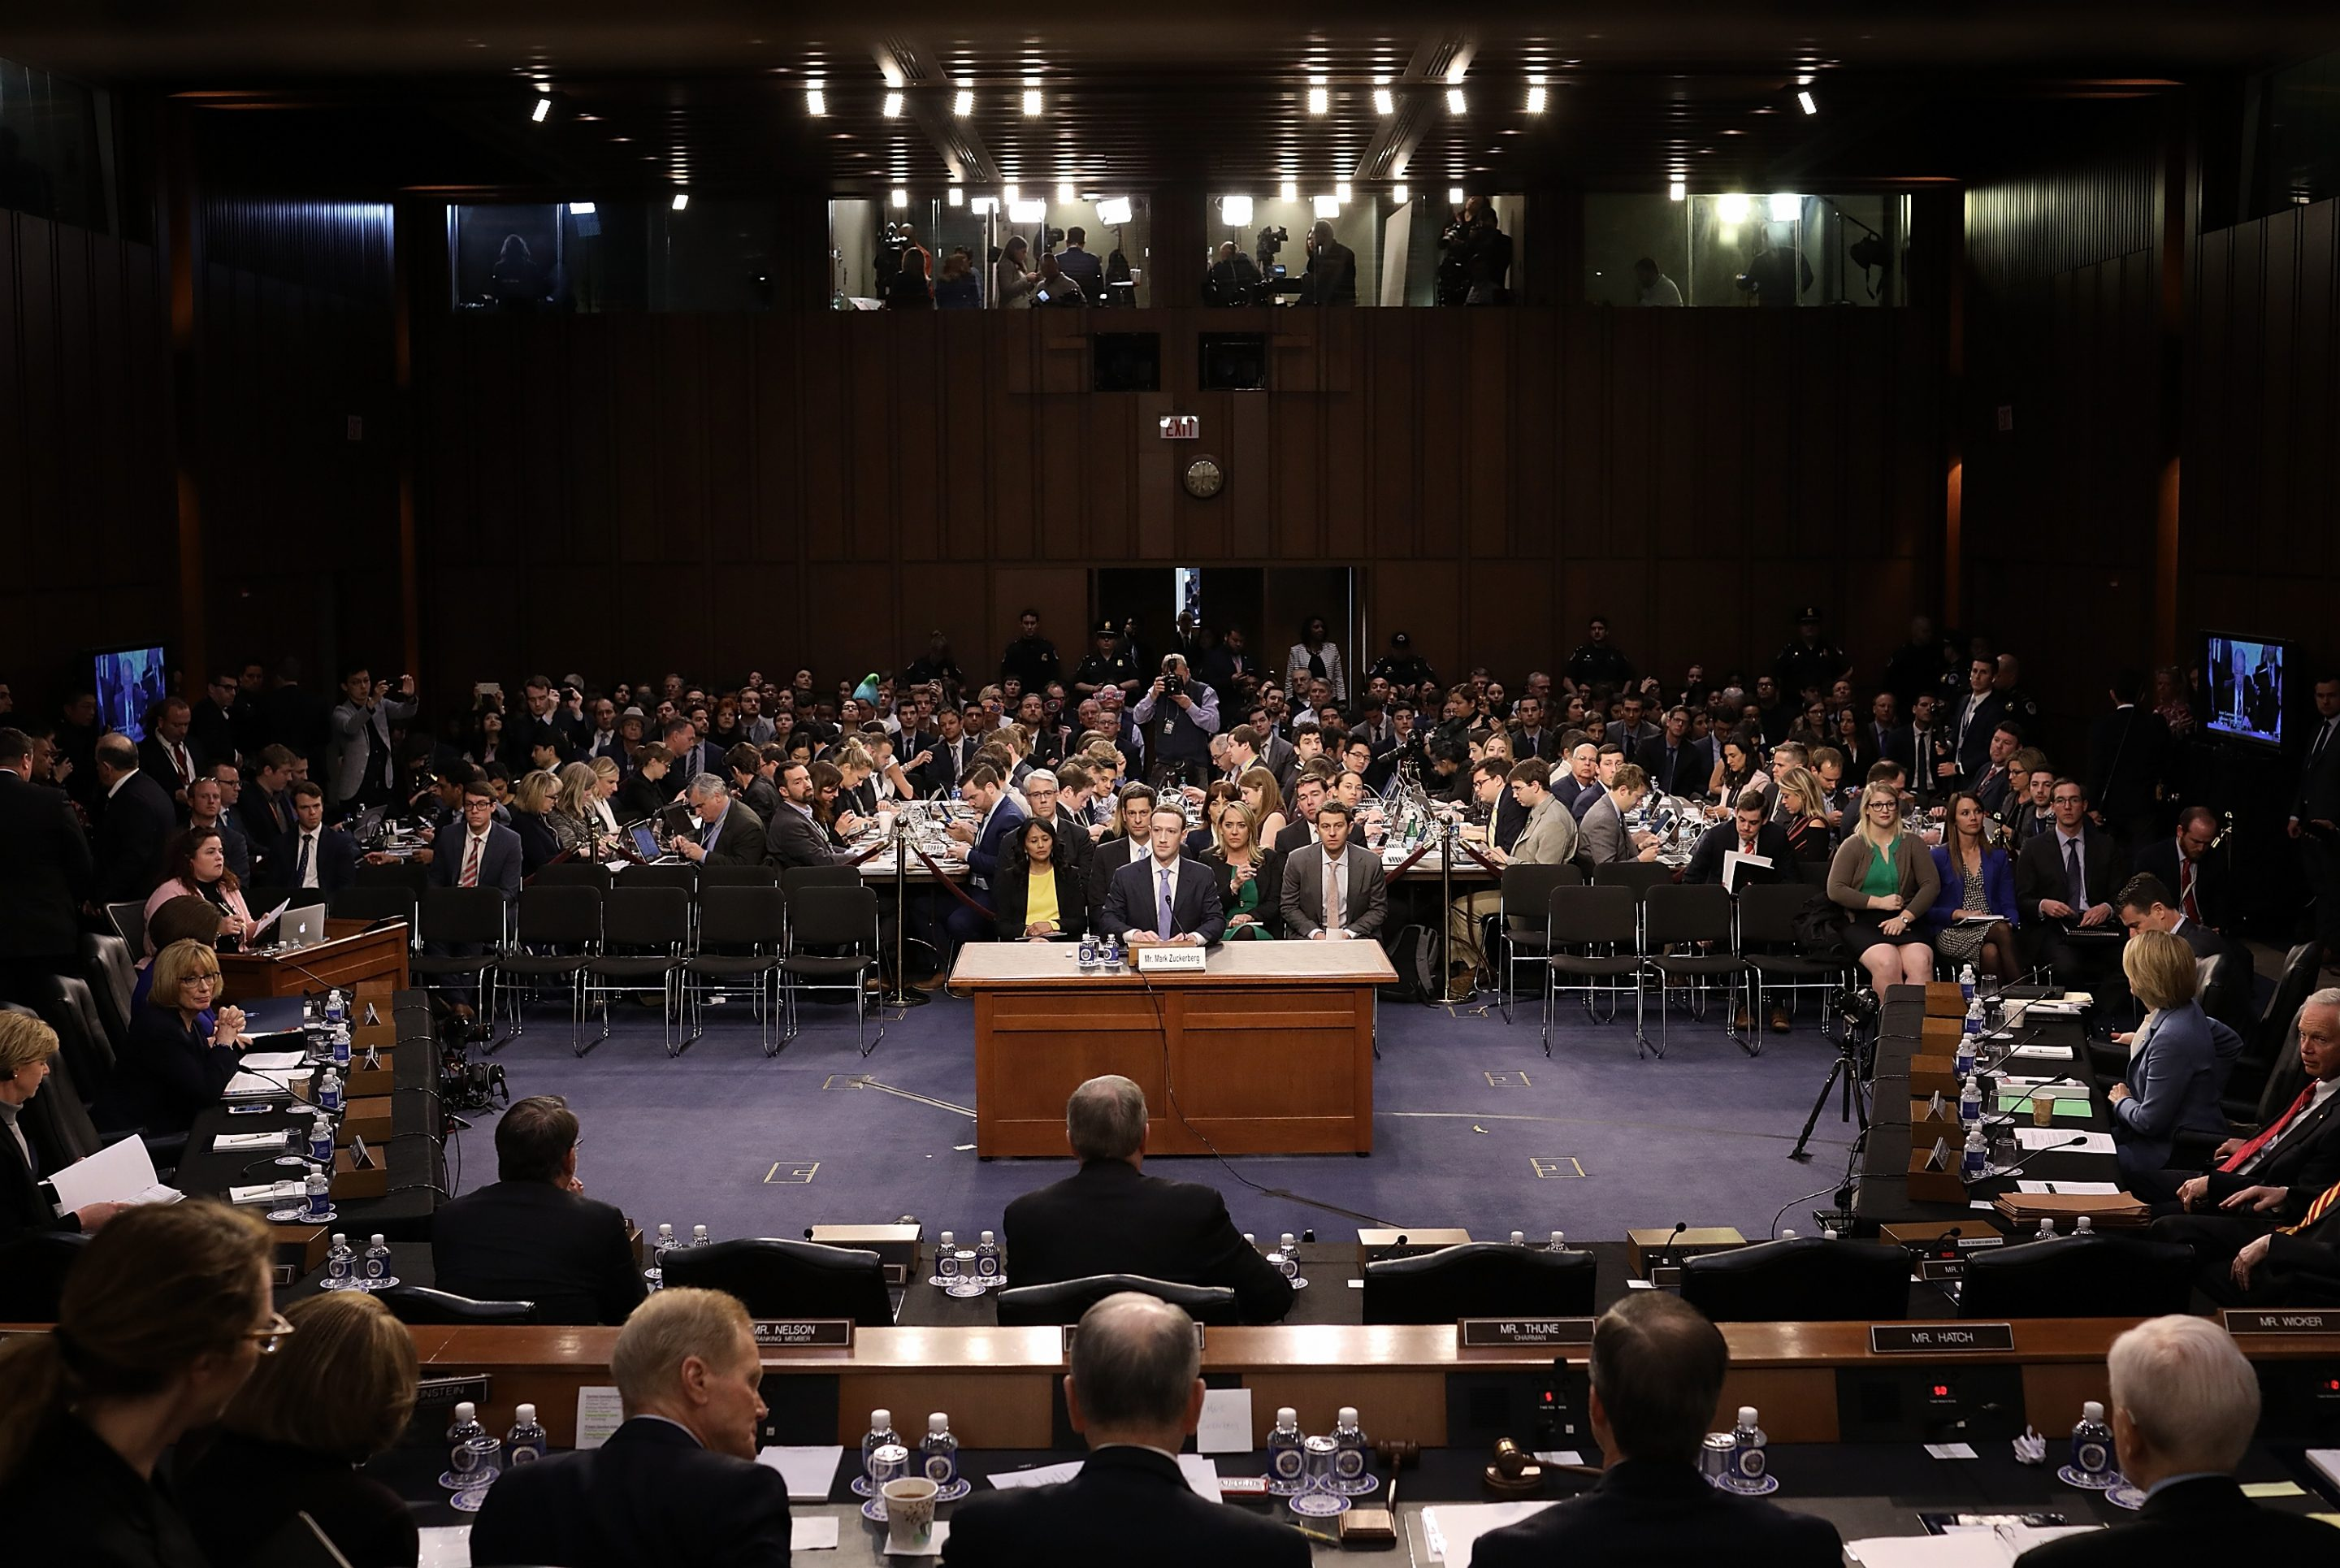 Facebook CEO Mark Zuckerberg testifies before a Senate hearing on April 10, 2018.